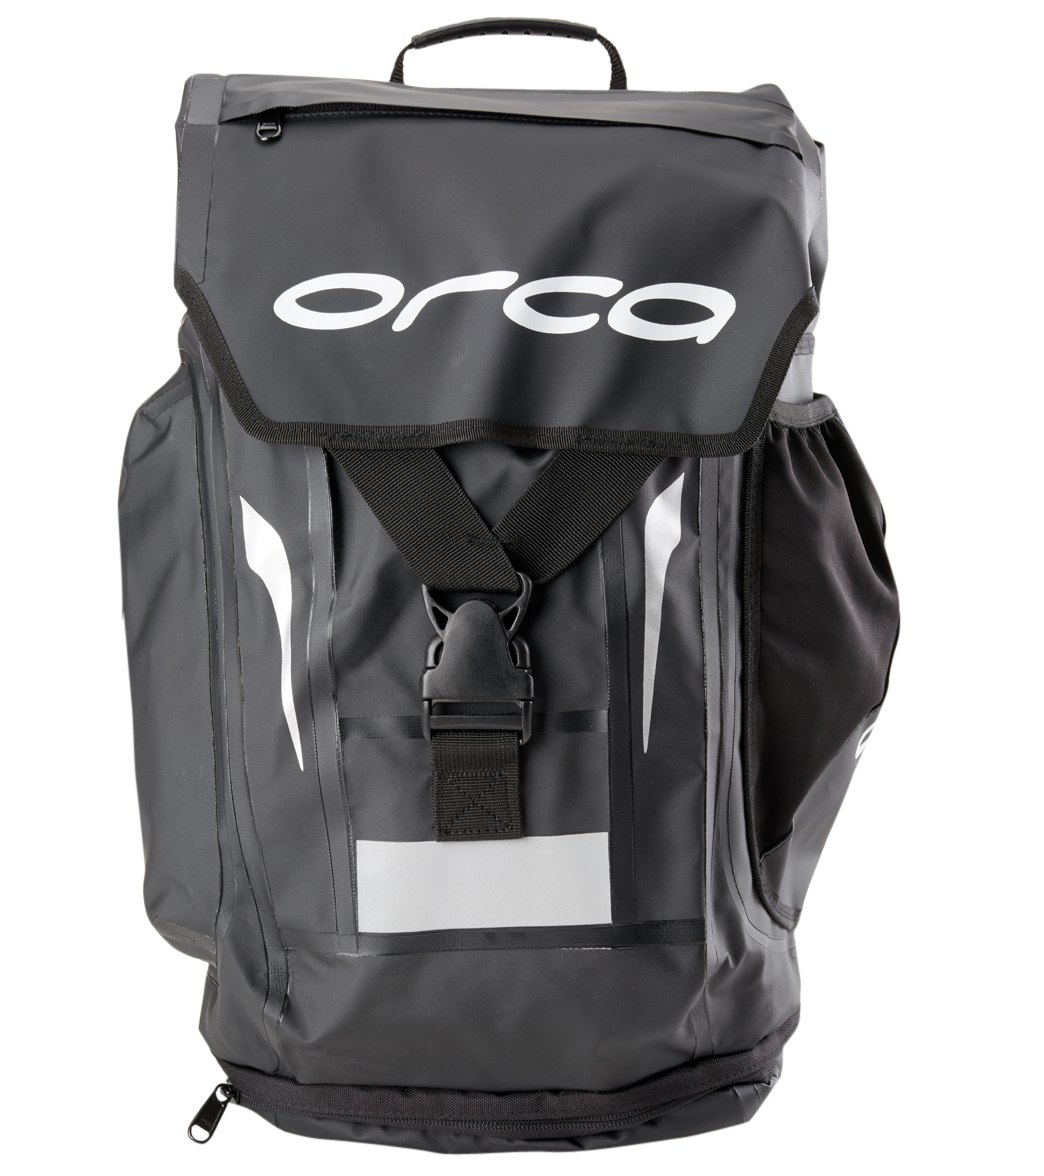 15aaf6a9225e Orca Waterproof Backpack at SwimOutlet.com - Free Shipping